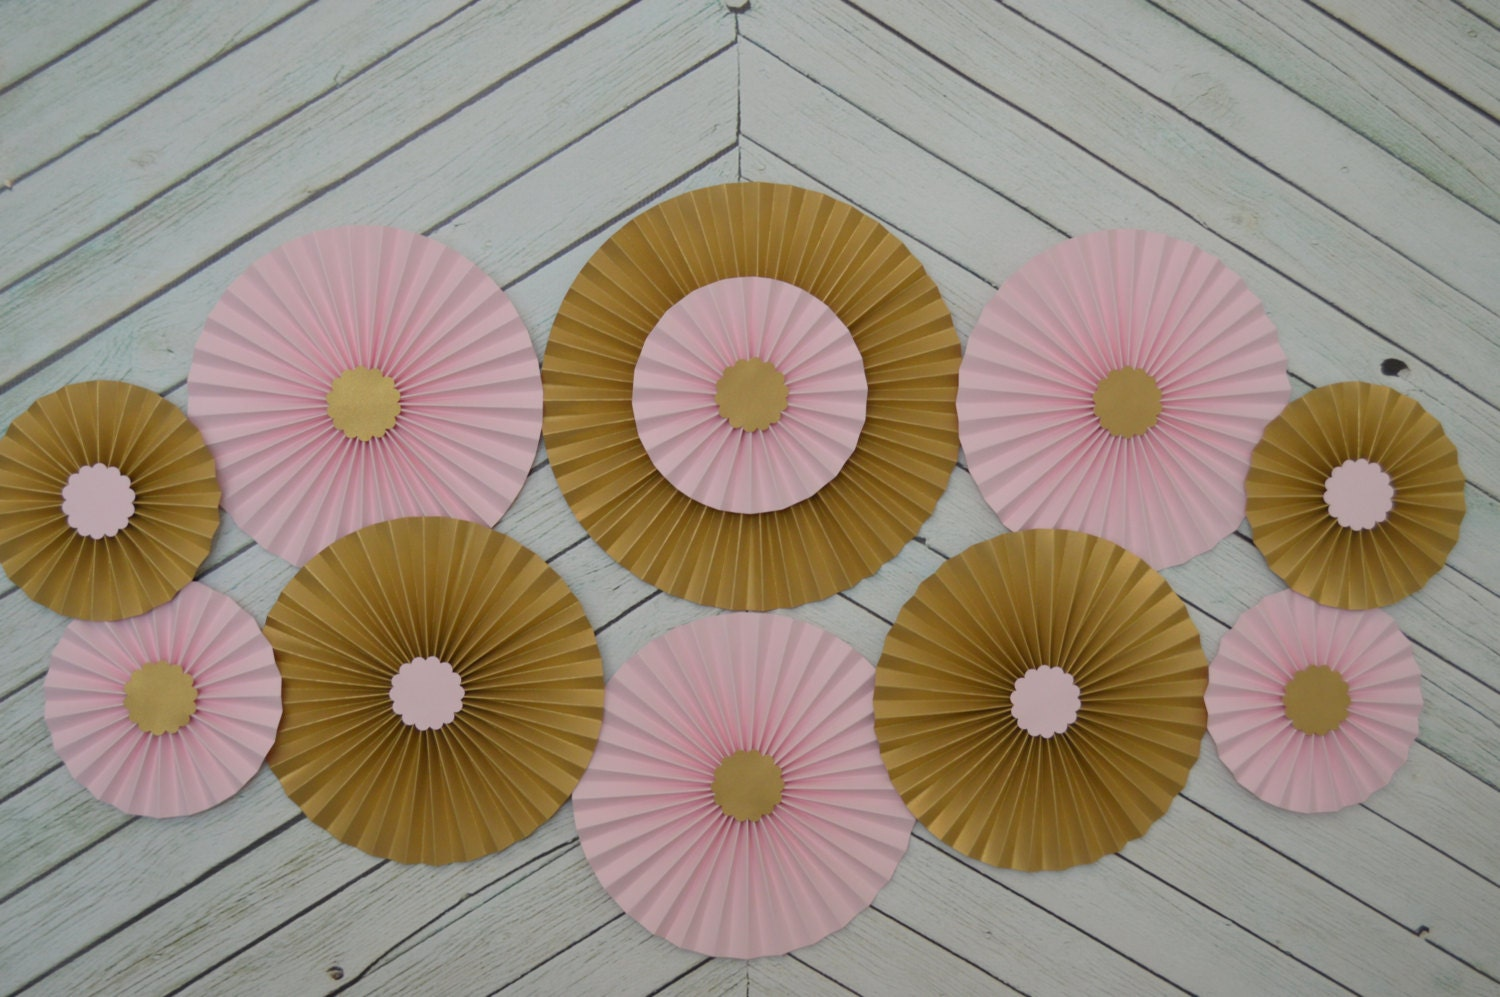 Gold Birthday Decorations Pink And Gold Set Of 11 Eleven Paper Fans Rosettes